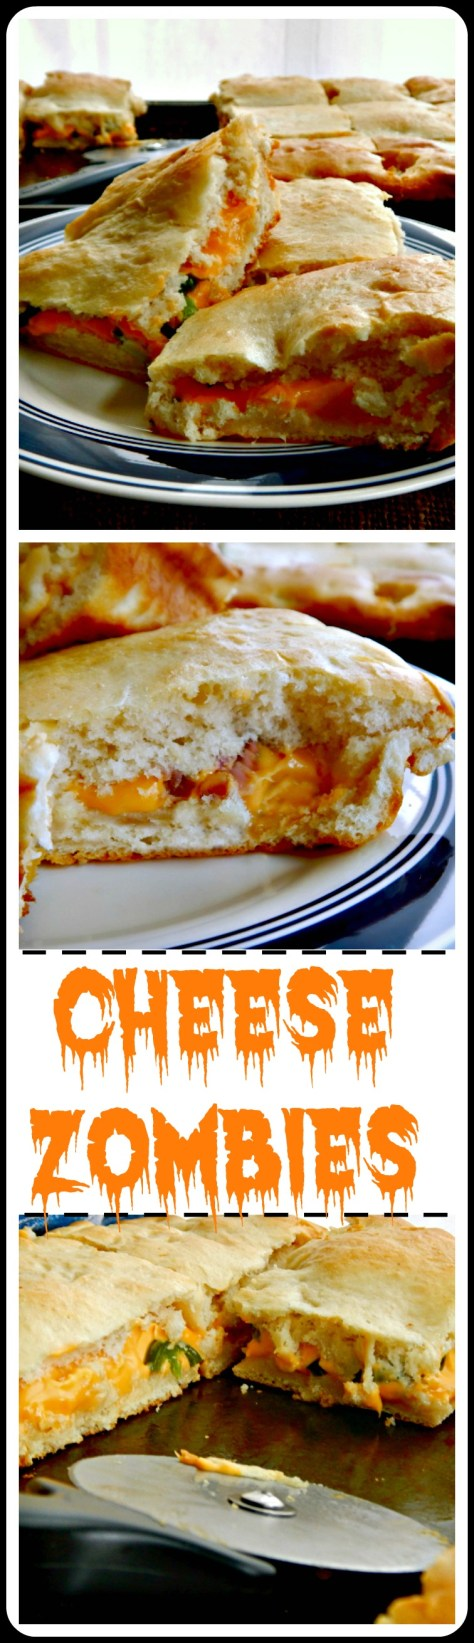 The Original Cheese Zombies: Baked Cheese Sandwiches full of ooey, gooey deliciousness and an easy home-made dough (use store bought in a pinch) these are fantastic for a crowd and freeze well. The classic is cheese but add what you'd like inside!